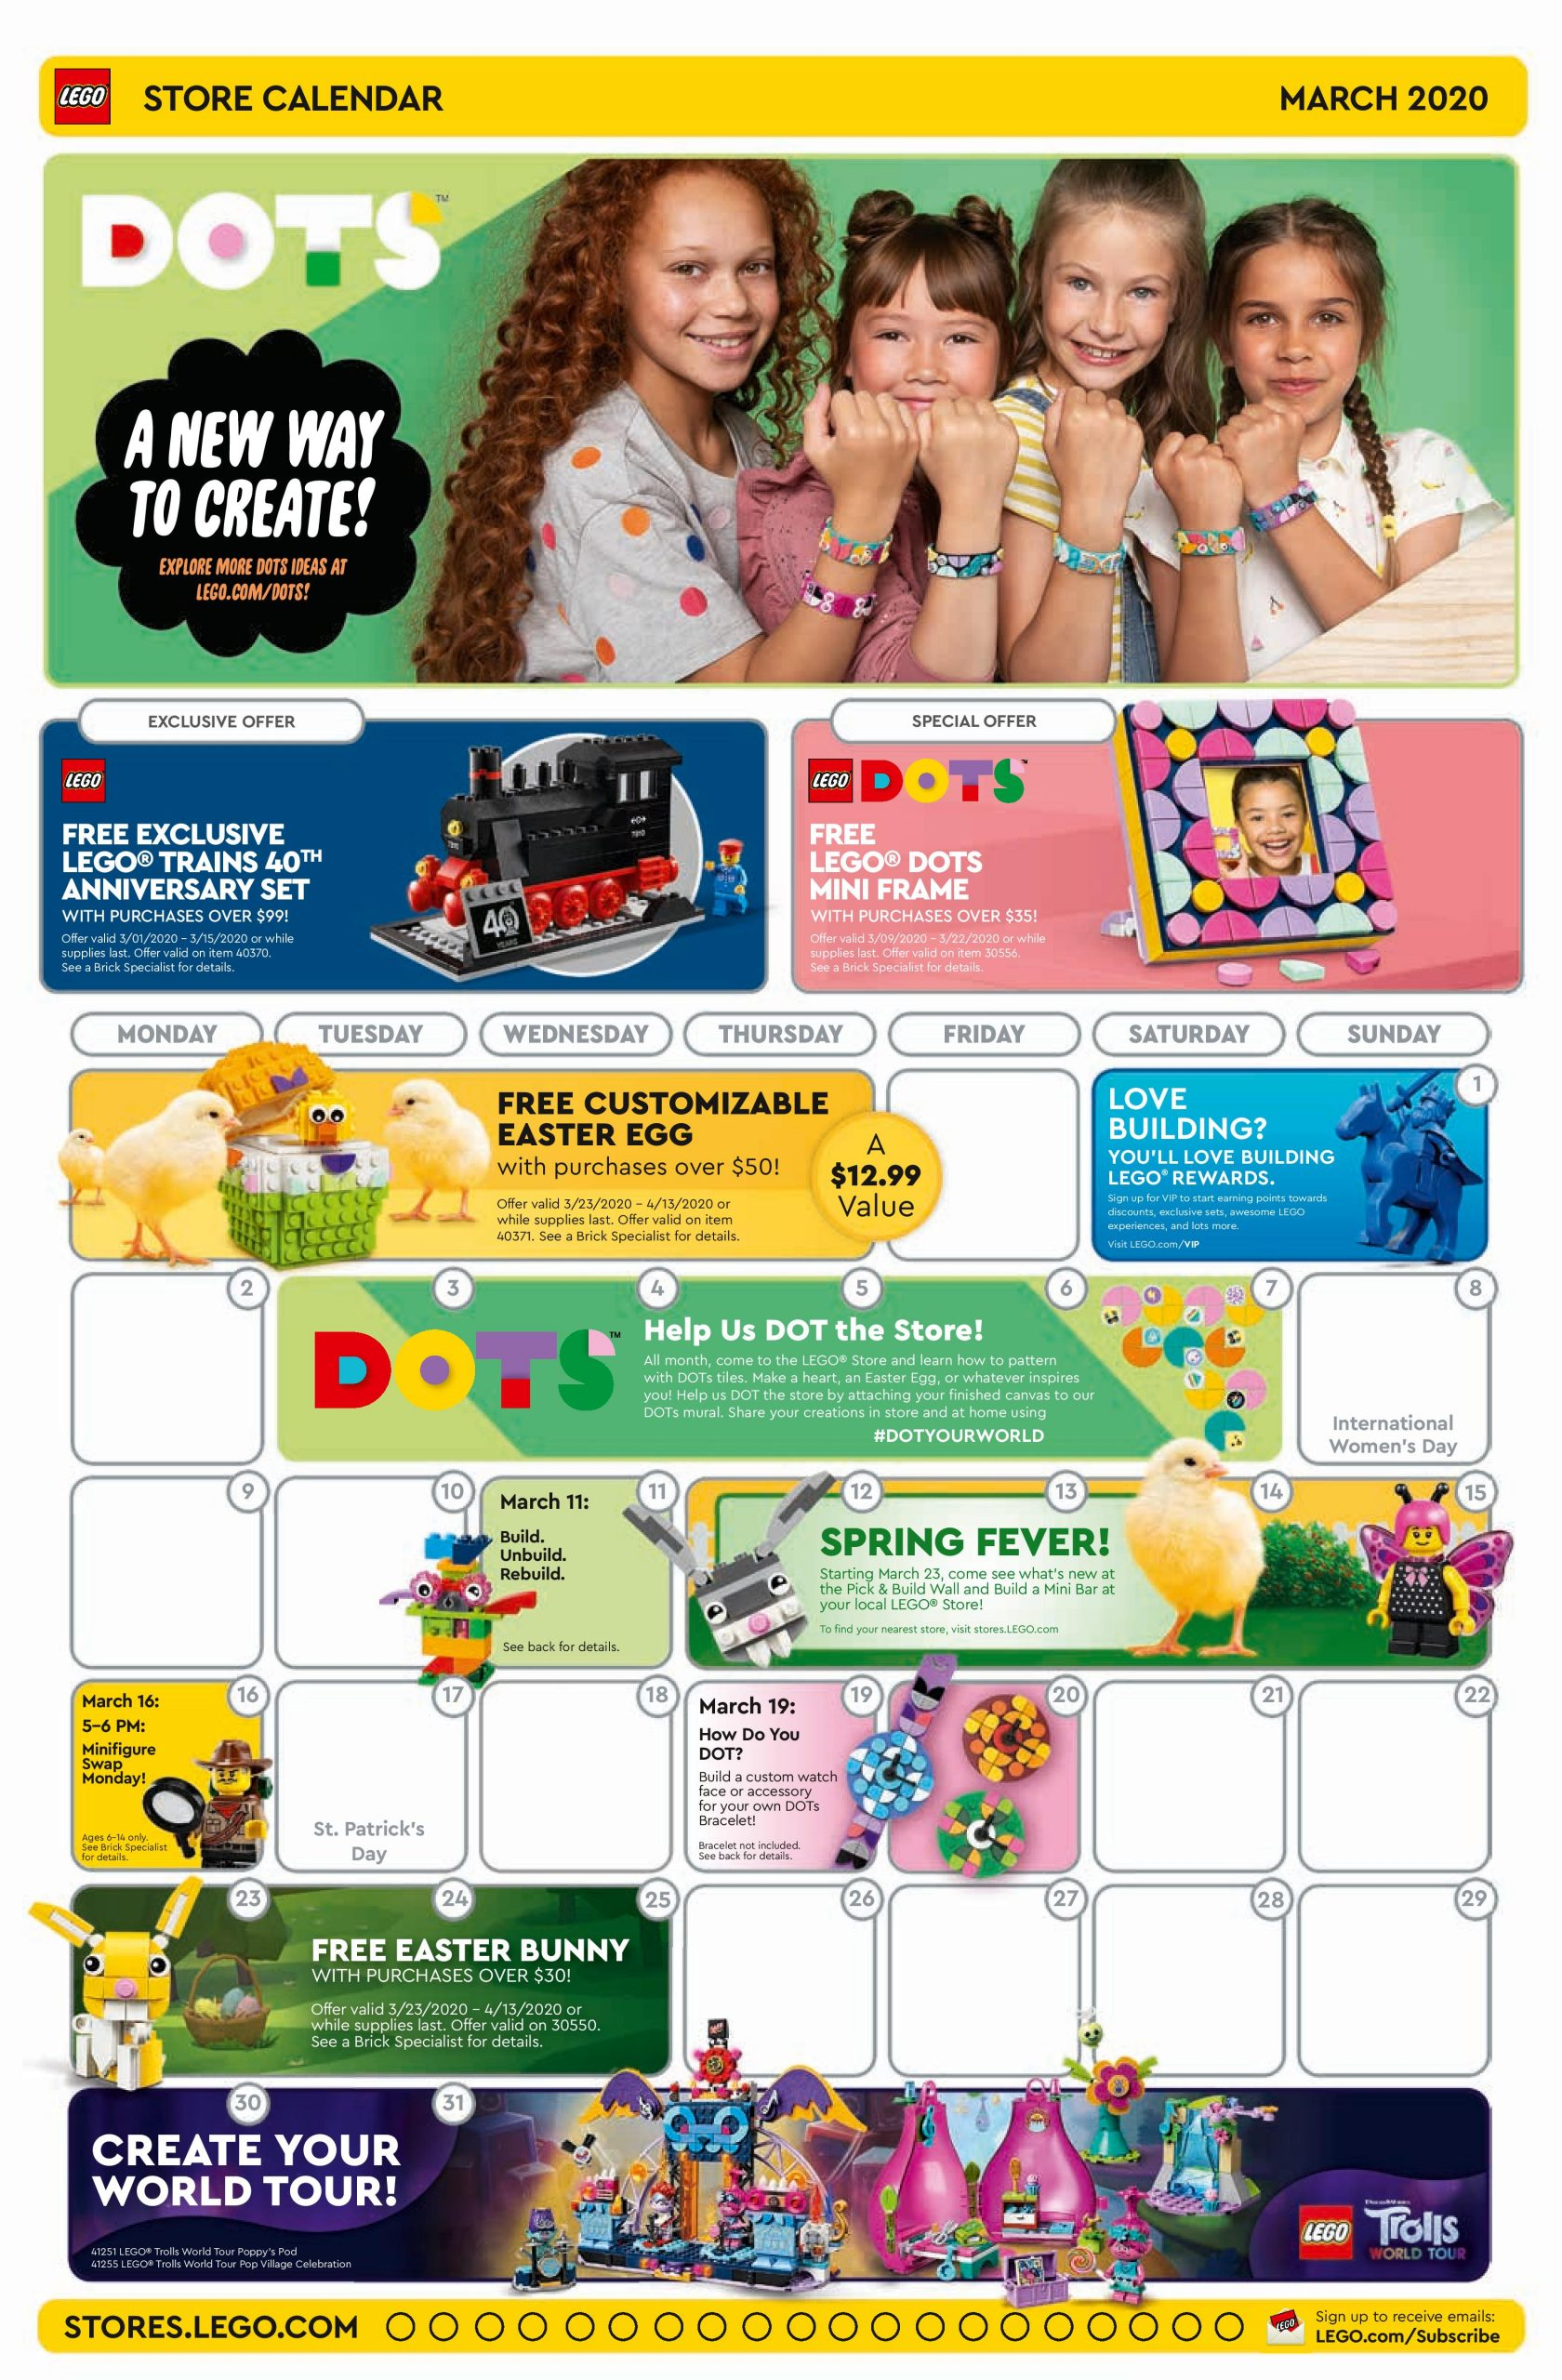 Lego Calendar April 2021 LEGO March 2020 Store Calendar Promotions & Events – The Brick Fan